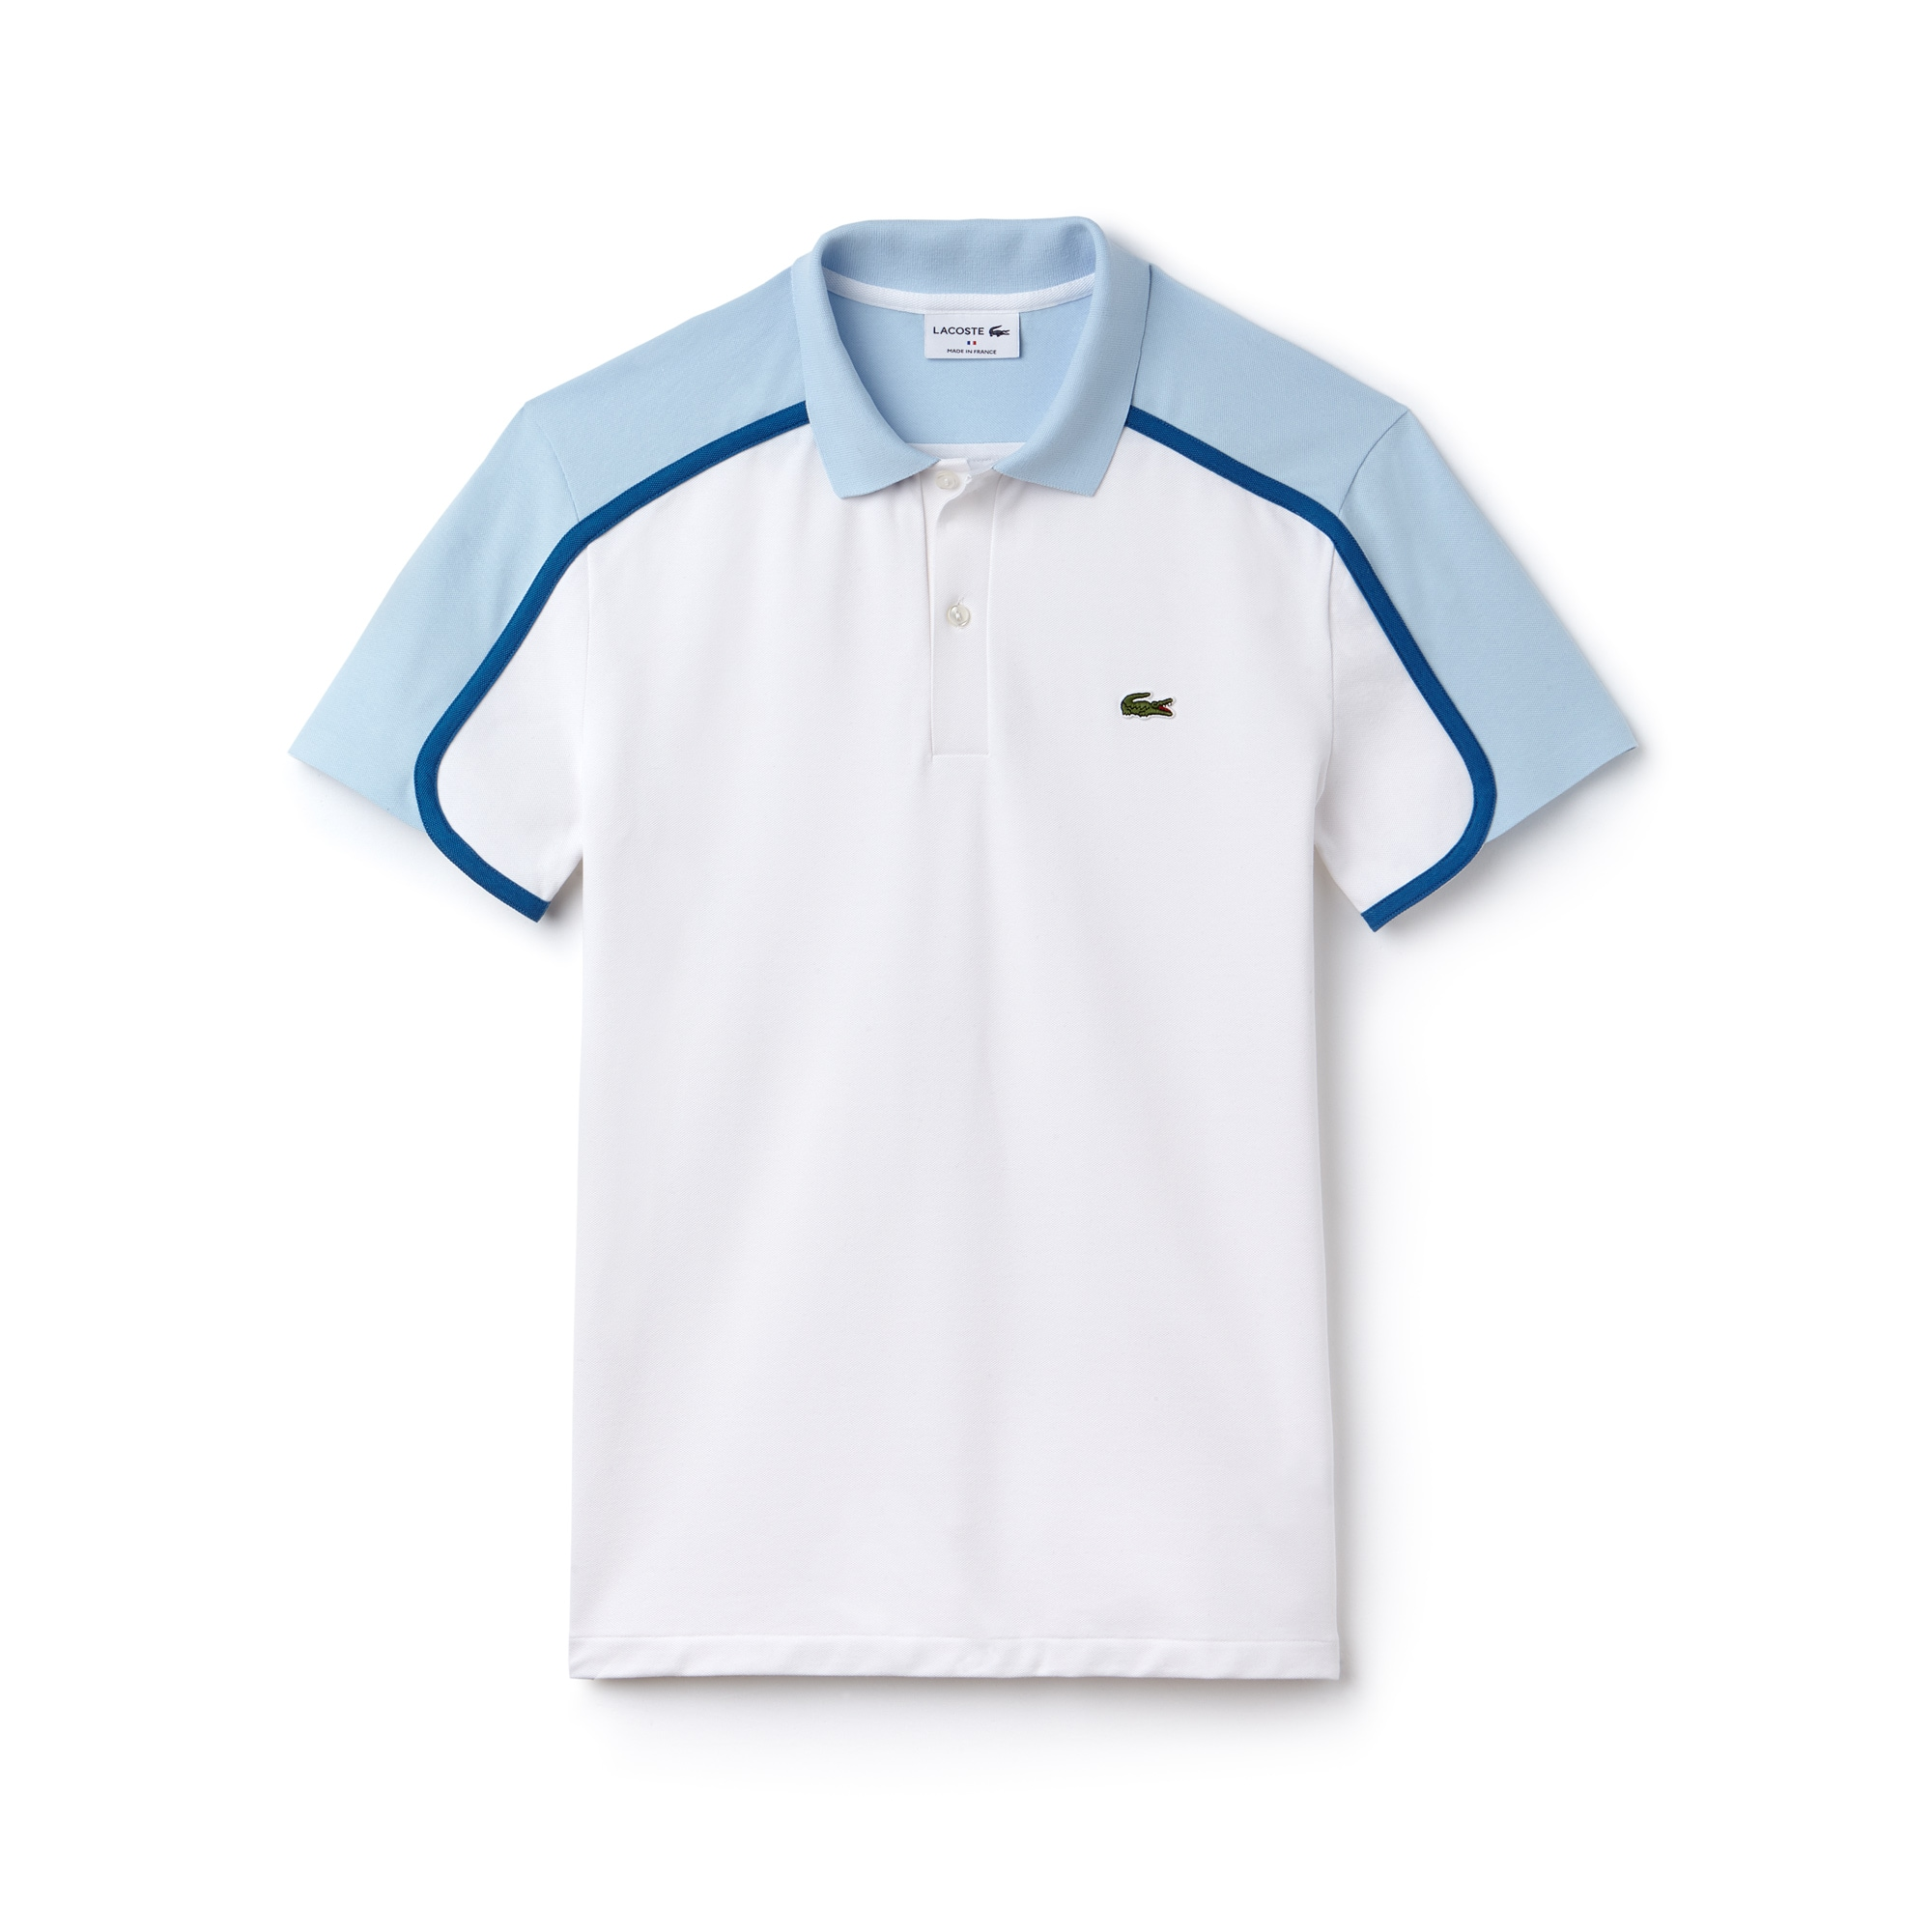 Men's Lacoste Made in France Slim Fit Colorblock Piqué Polo Shirt